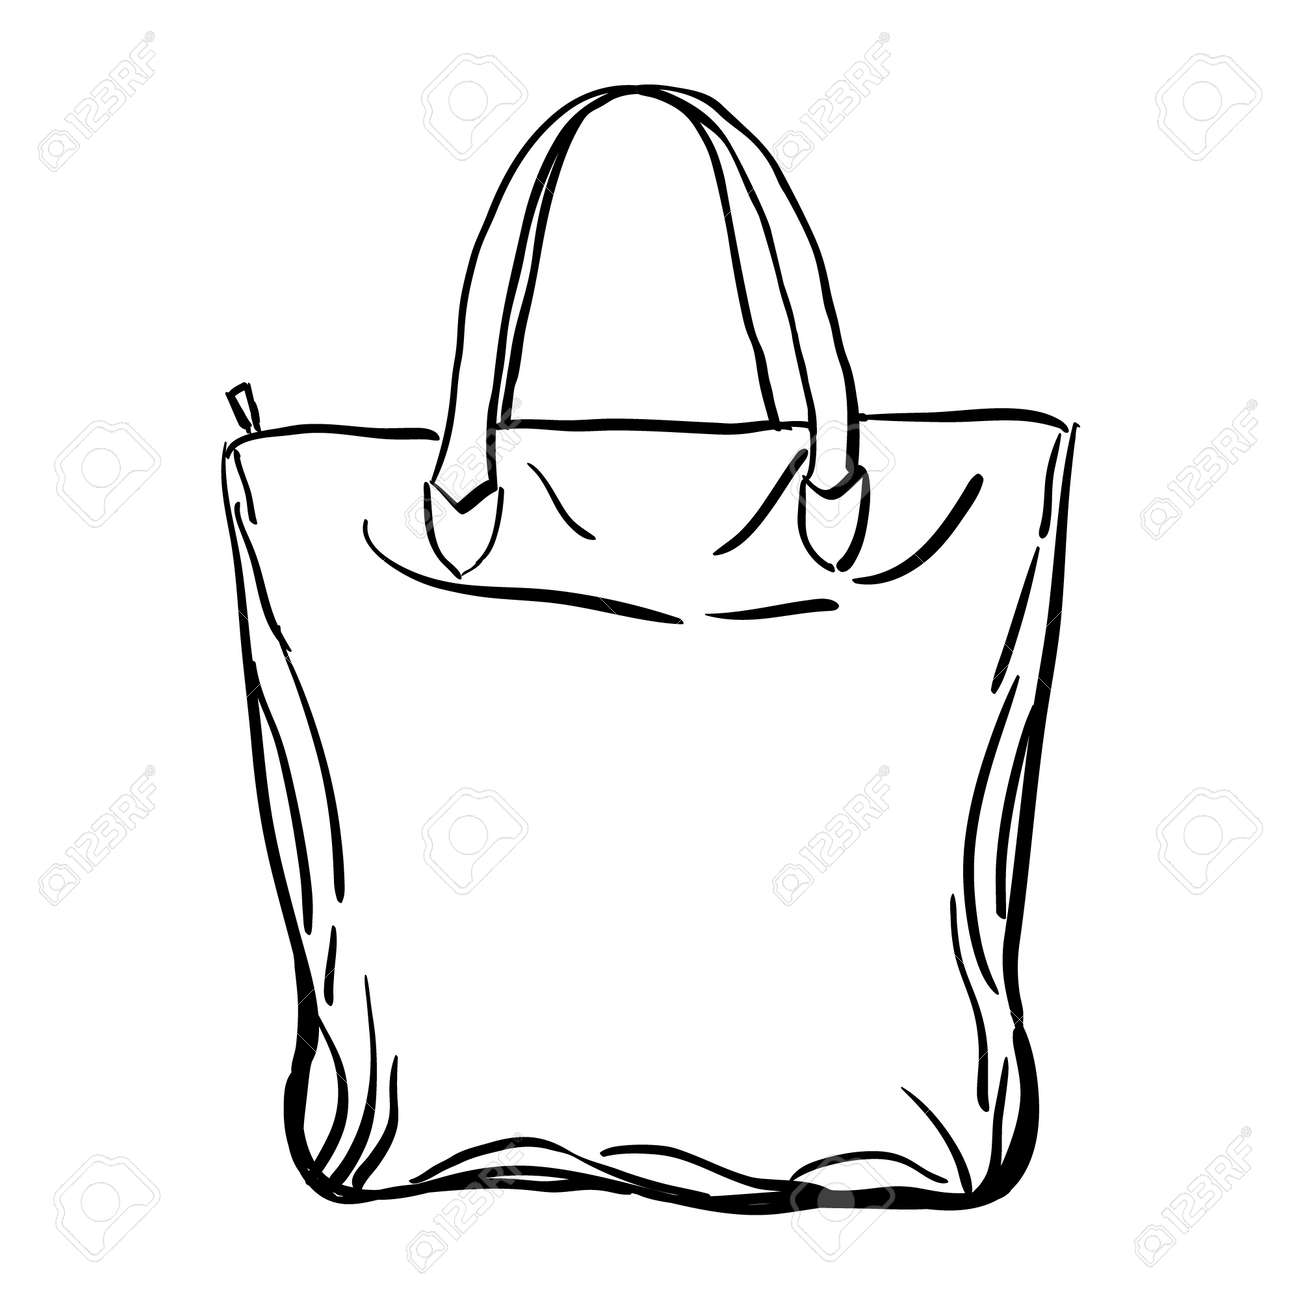 Tote bag drawing - Beach Tote Bag Sketch Isolated On White Background Vector Illustration Stock Vector 57642927